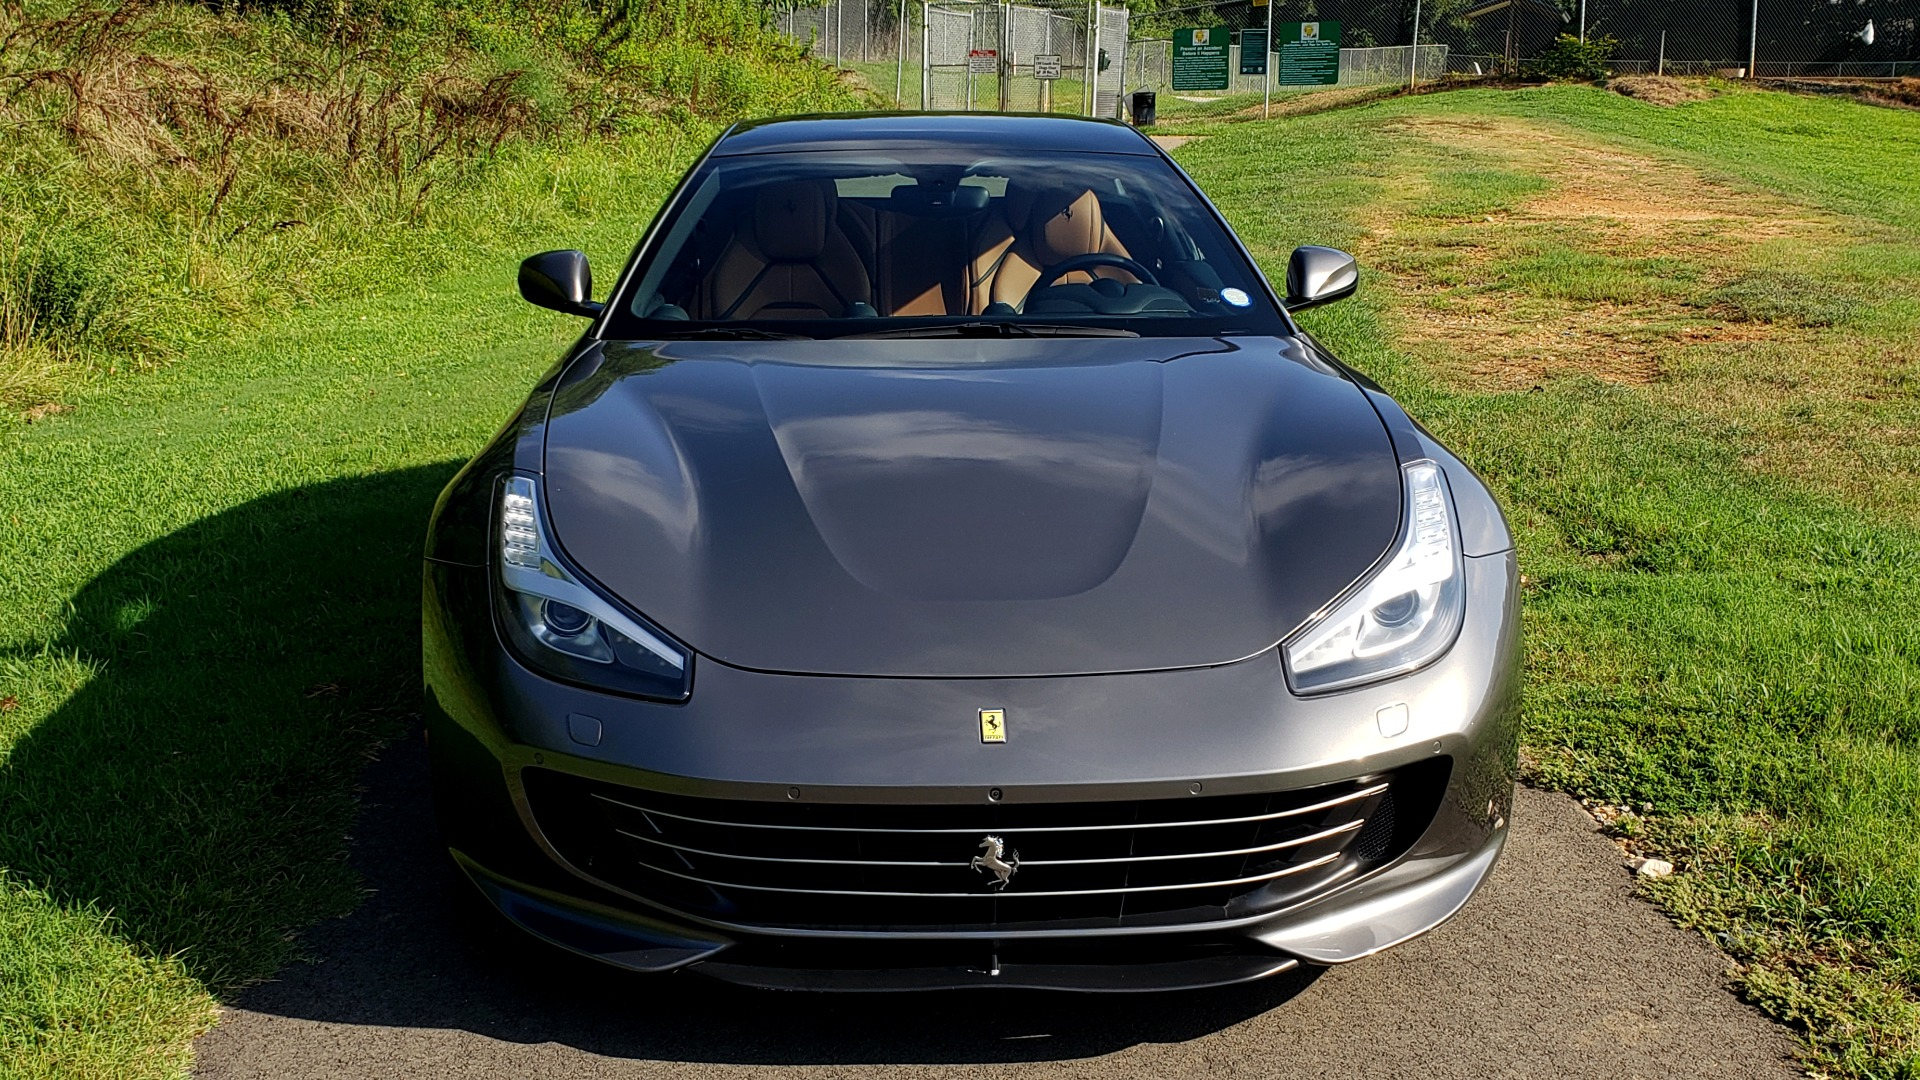 Used 2017 Ferrari GTC4 LUSSO AWD / PANO-ROOF / APPLE CAR PLAY / SUSP LIFT / JBL SOUND for sale $188,999 at Formula Imports in Charlotte NC 28227 13